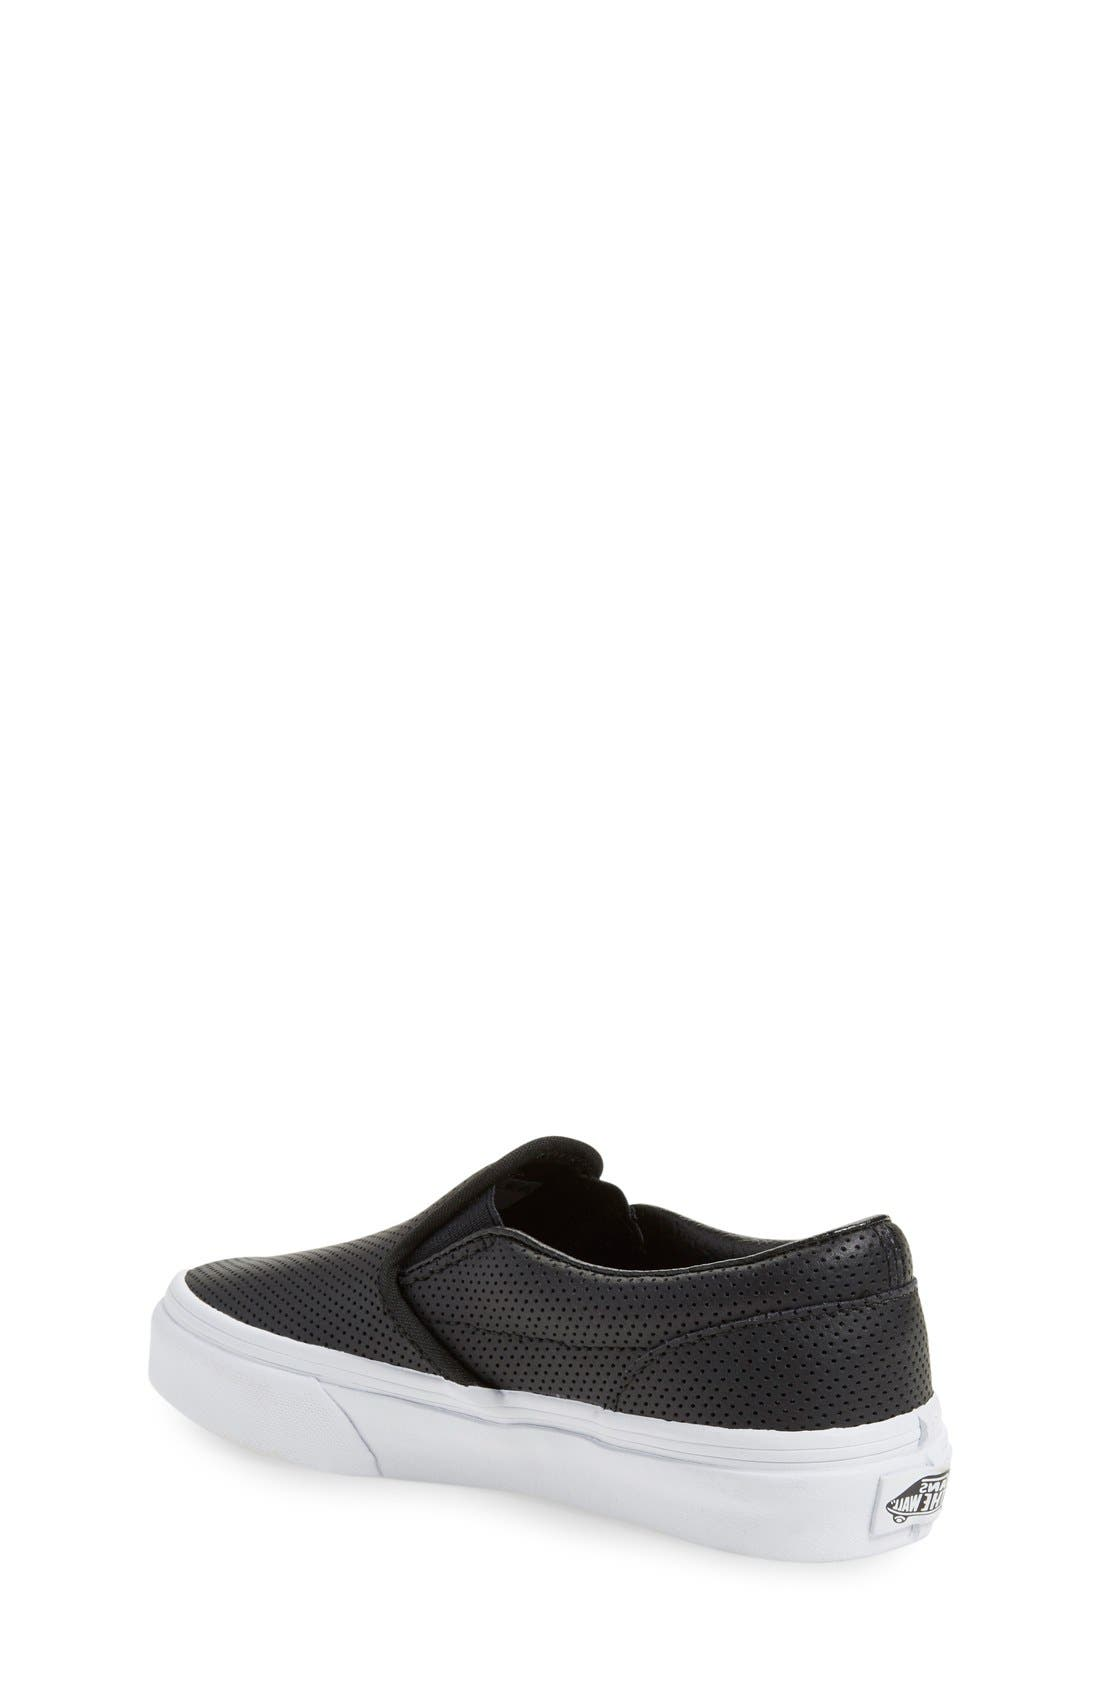 VANS, 'Classic' Slip-On Sneaker, Alternate thumbnail 2, color, BLACK LEATHER